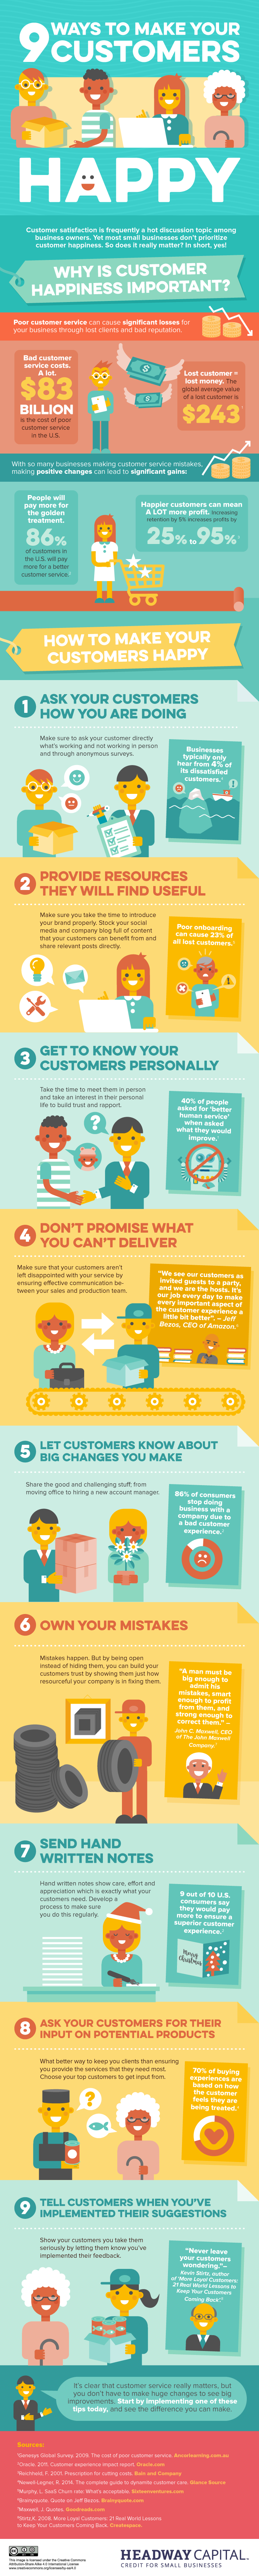 9-ways-to-make-your-customers-happy